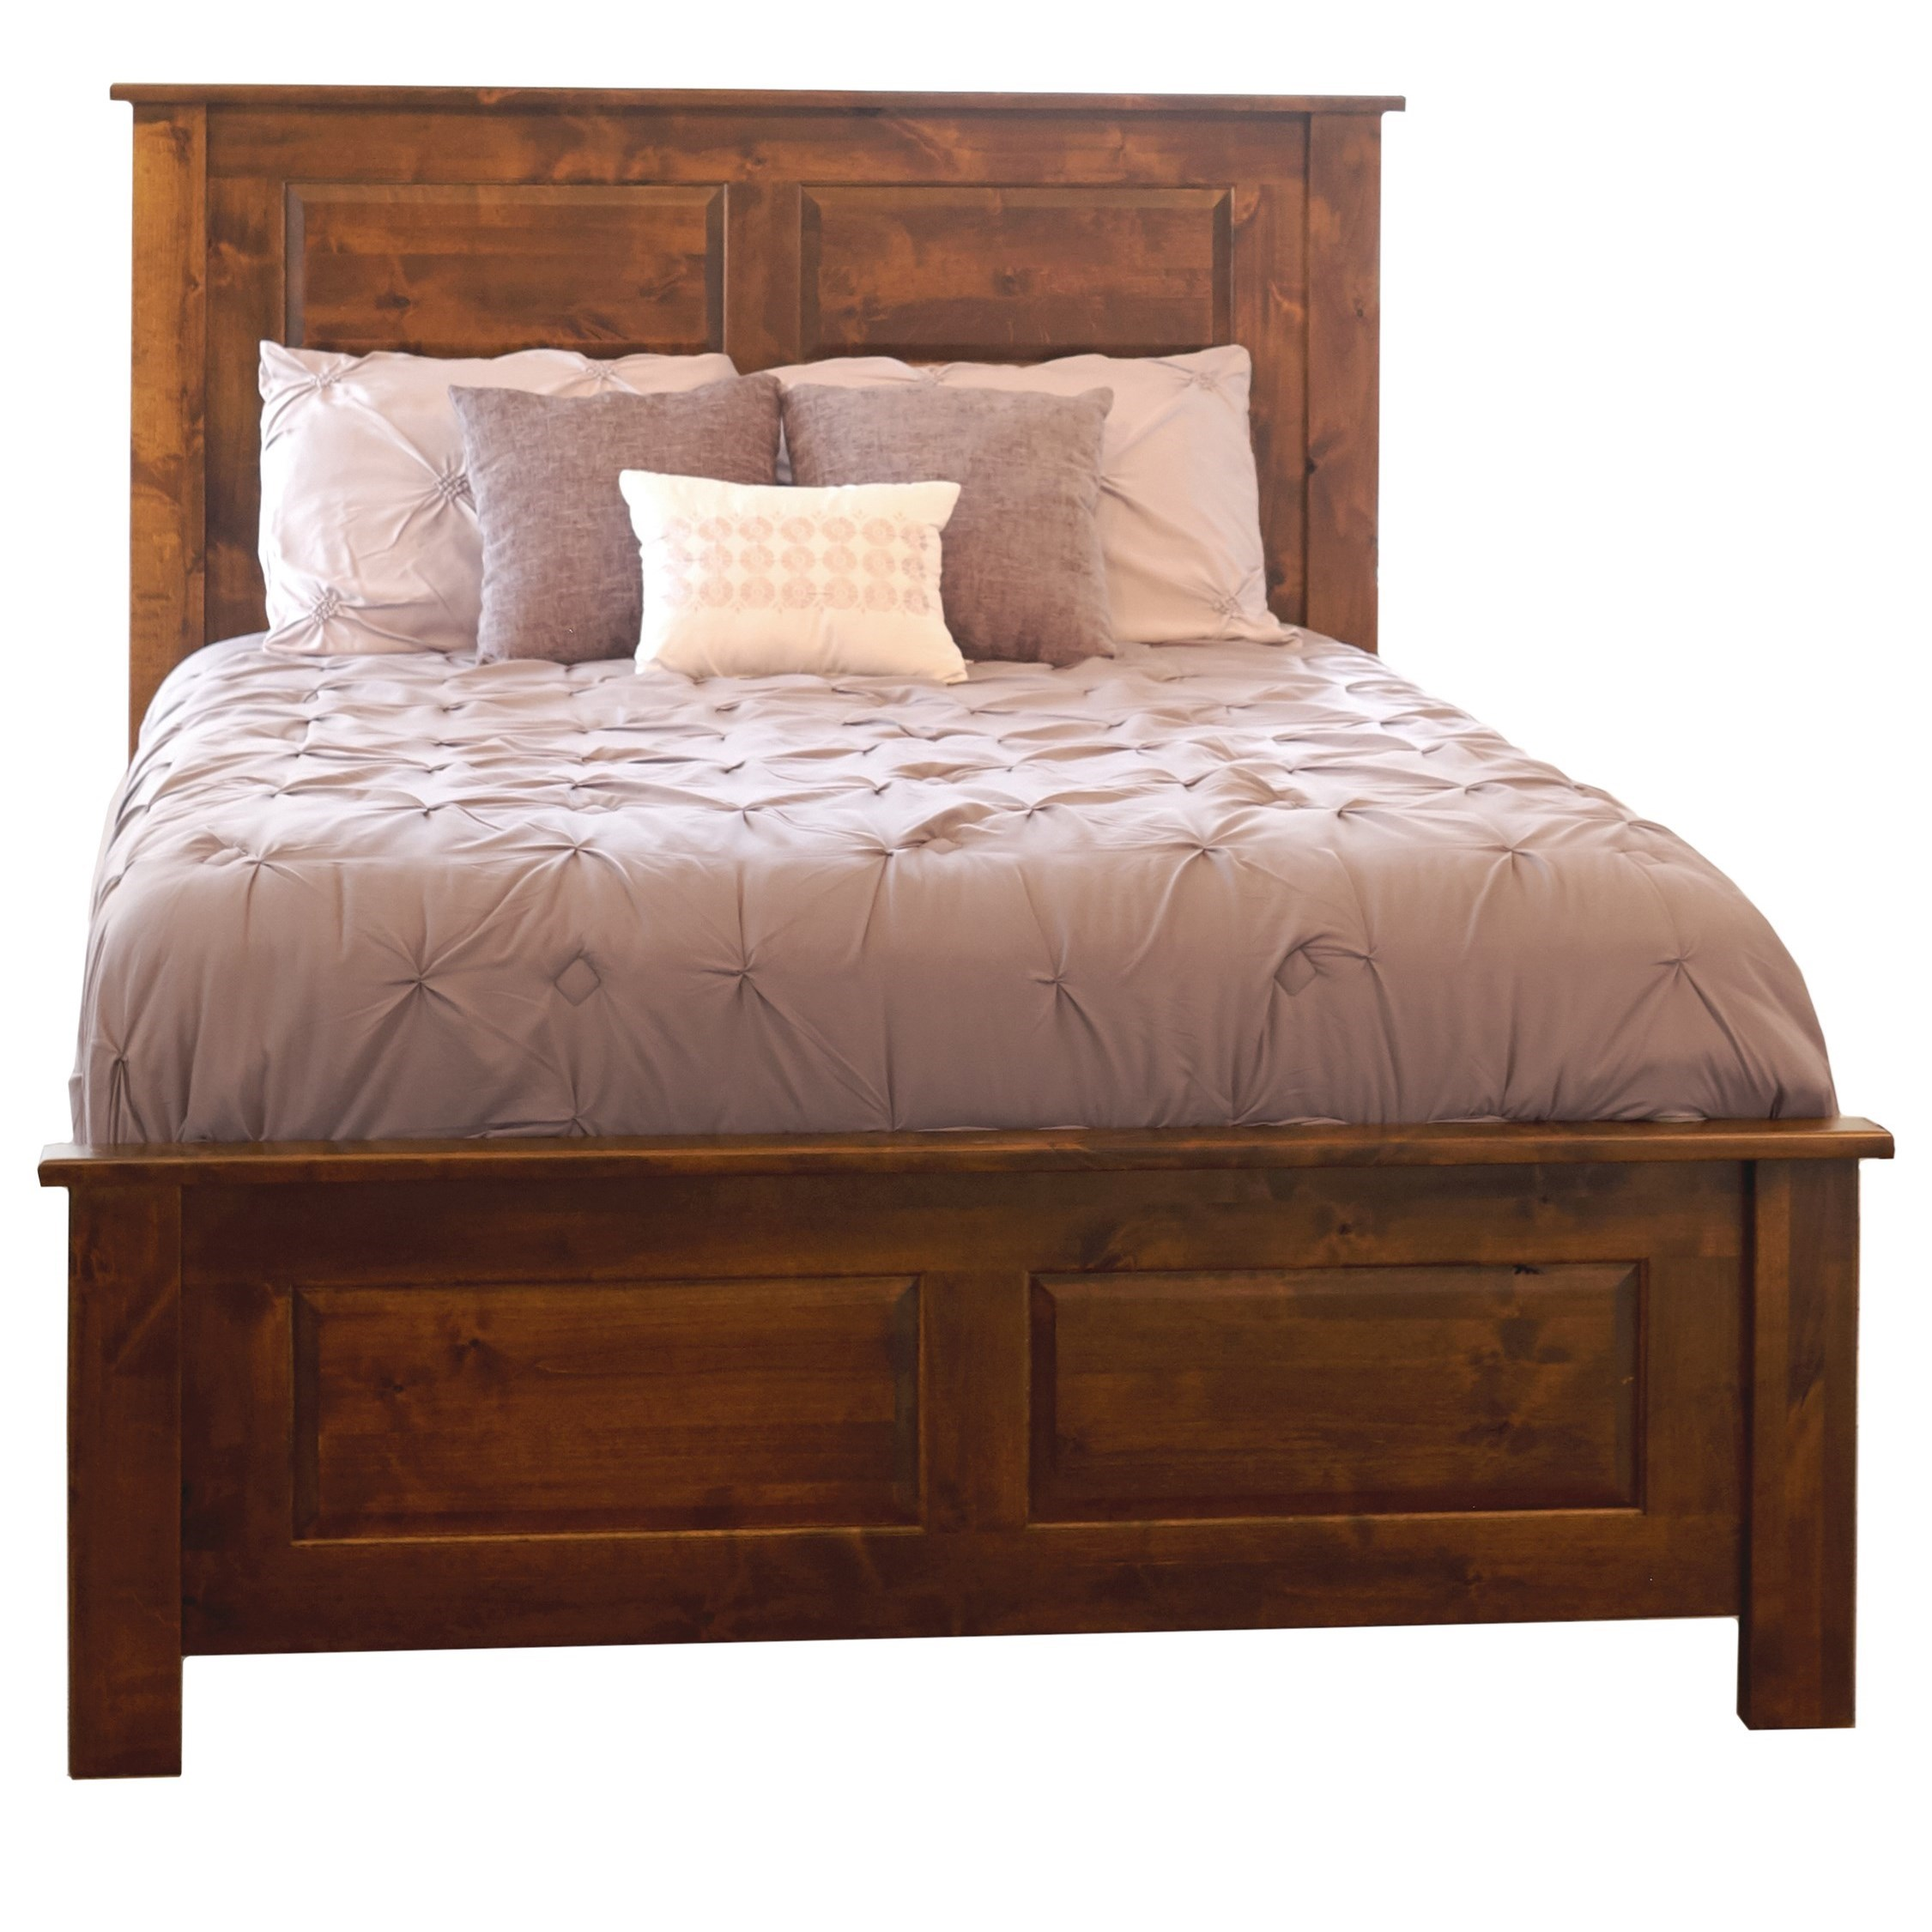 Fulton Bedroom Queen Mantle Panel Bed at Williams & Kay